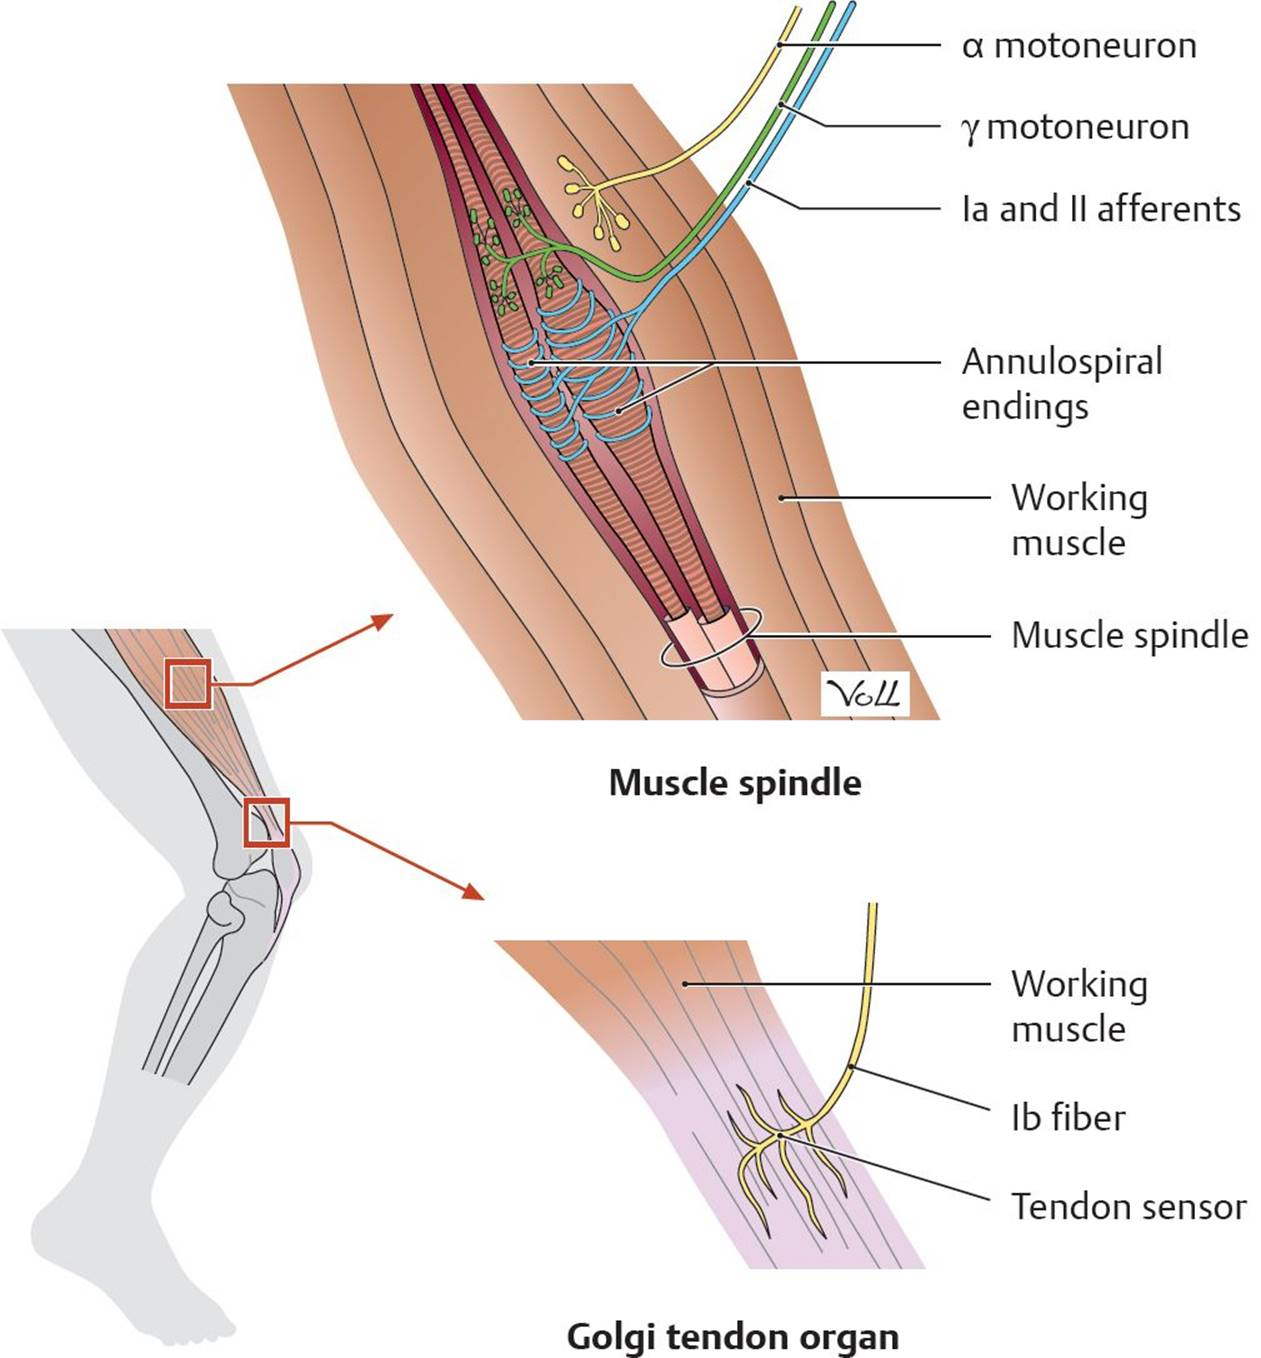 Motor Systems - Physiology - An Illustrated Review